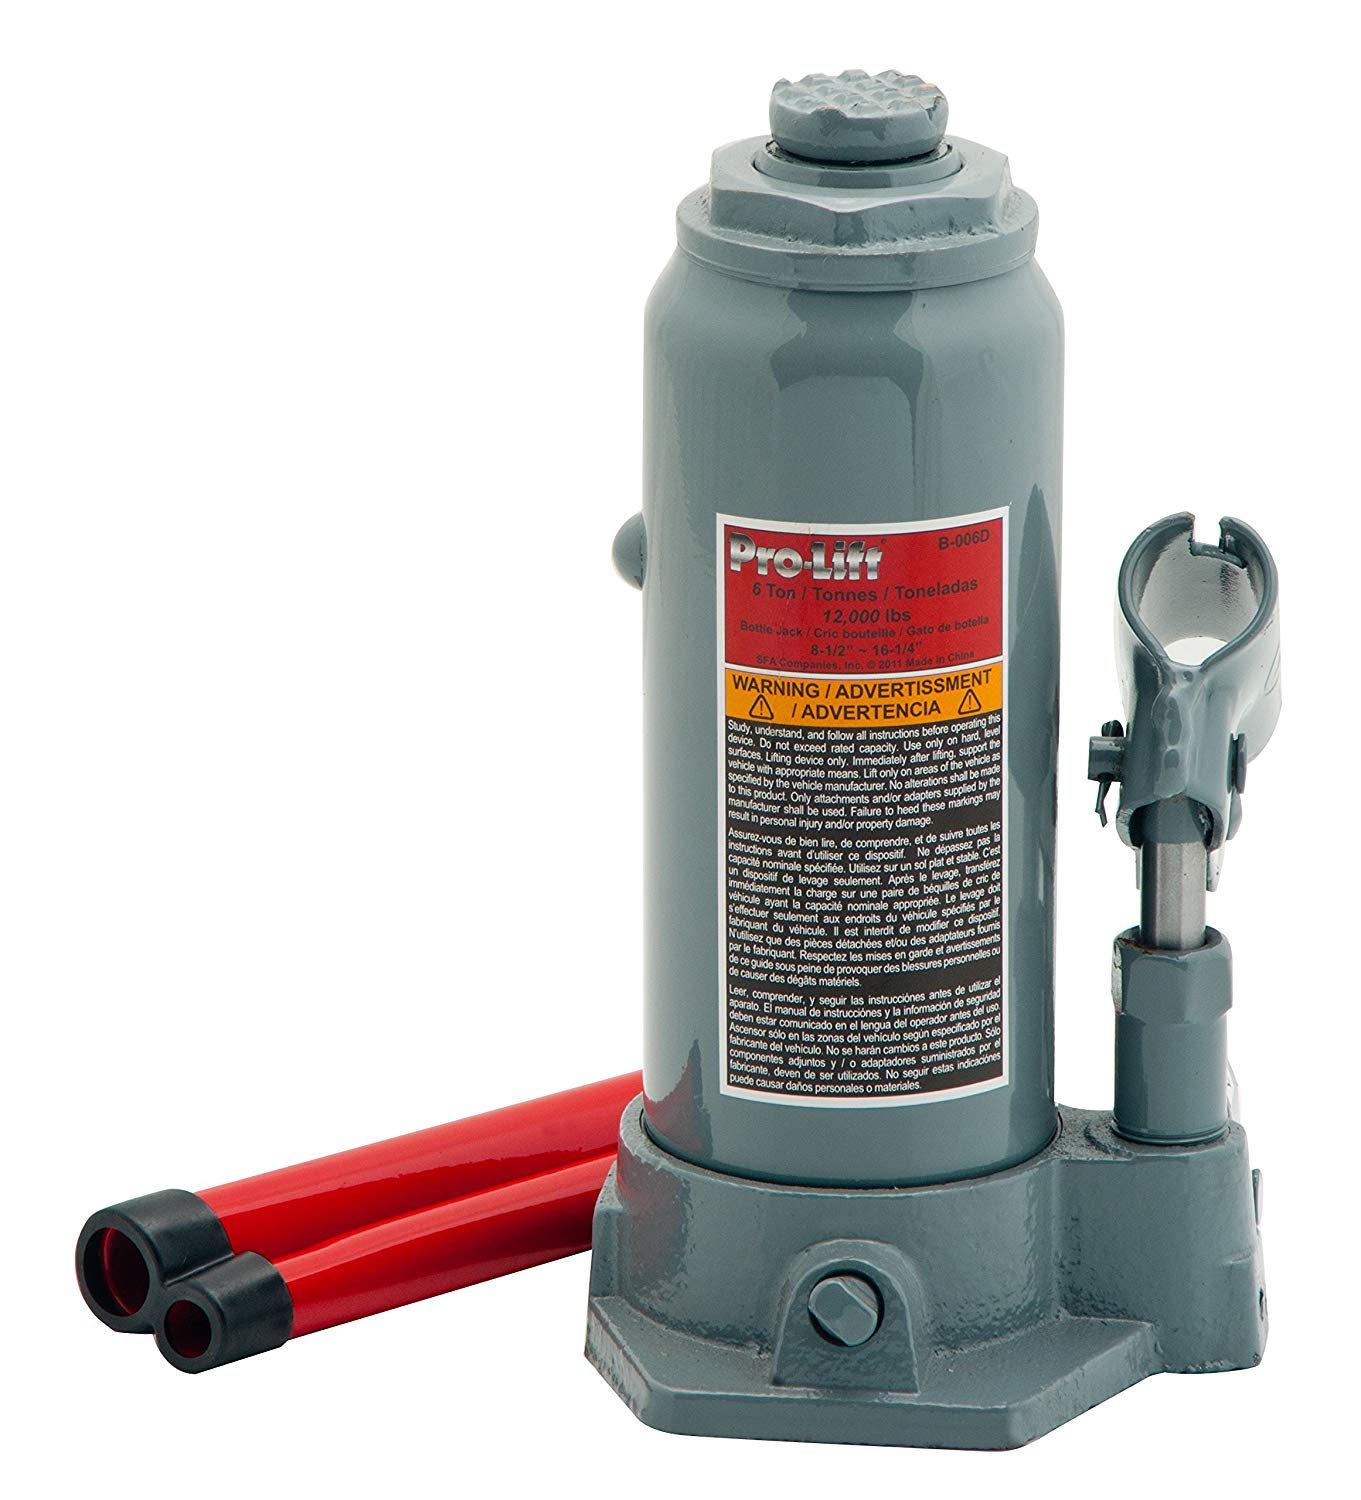 The 6 Ton Pro-Lift B-006D Hydraulic Bottle Jack